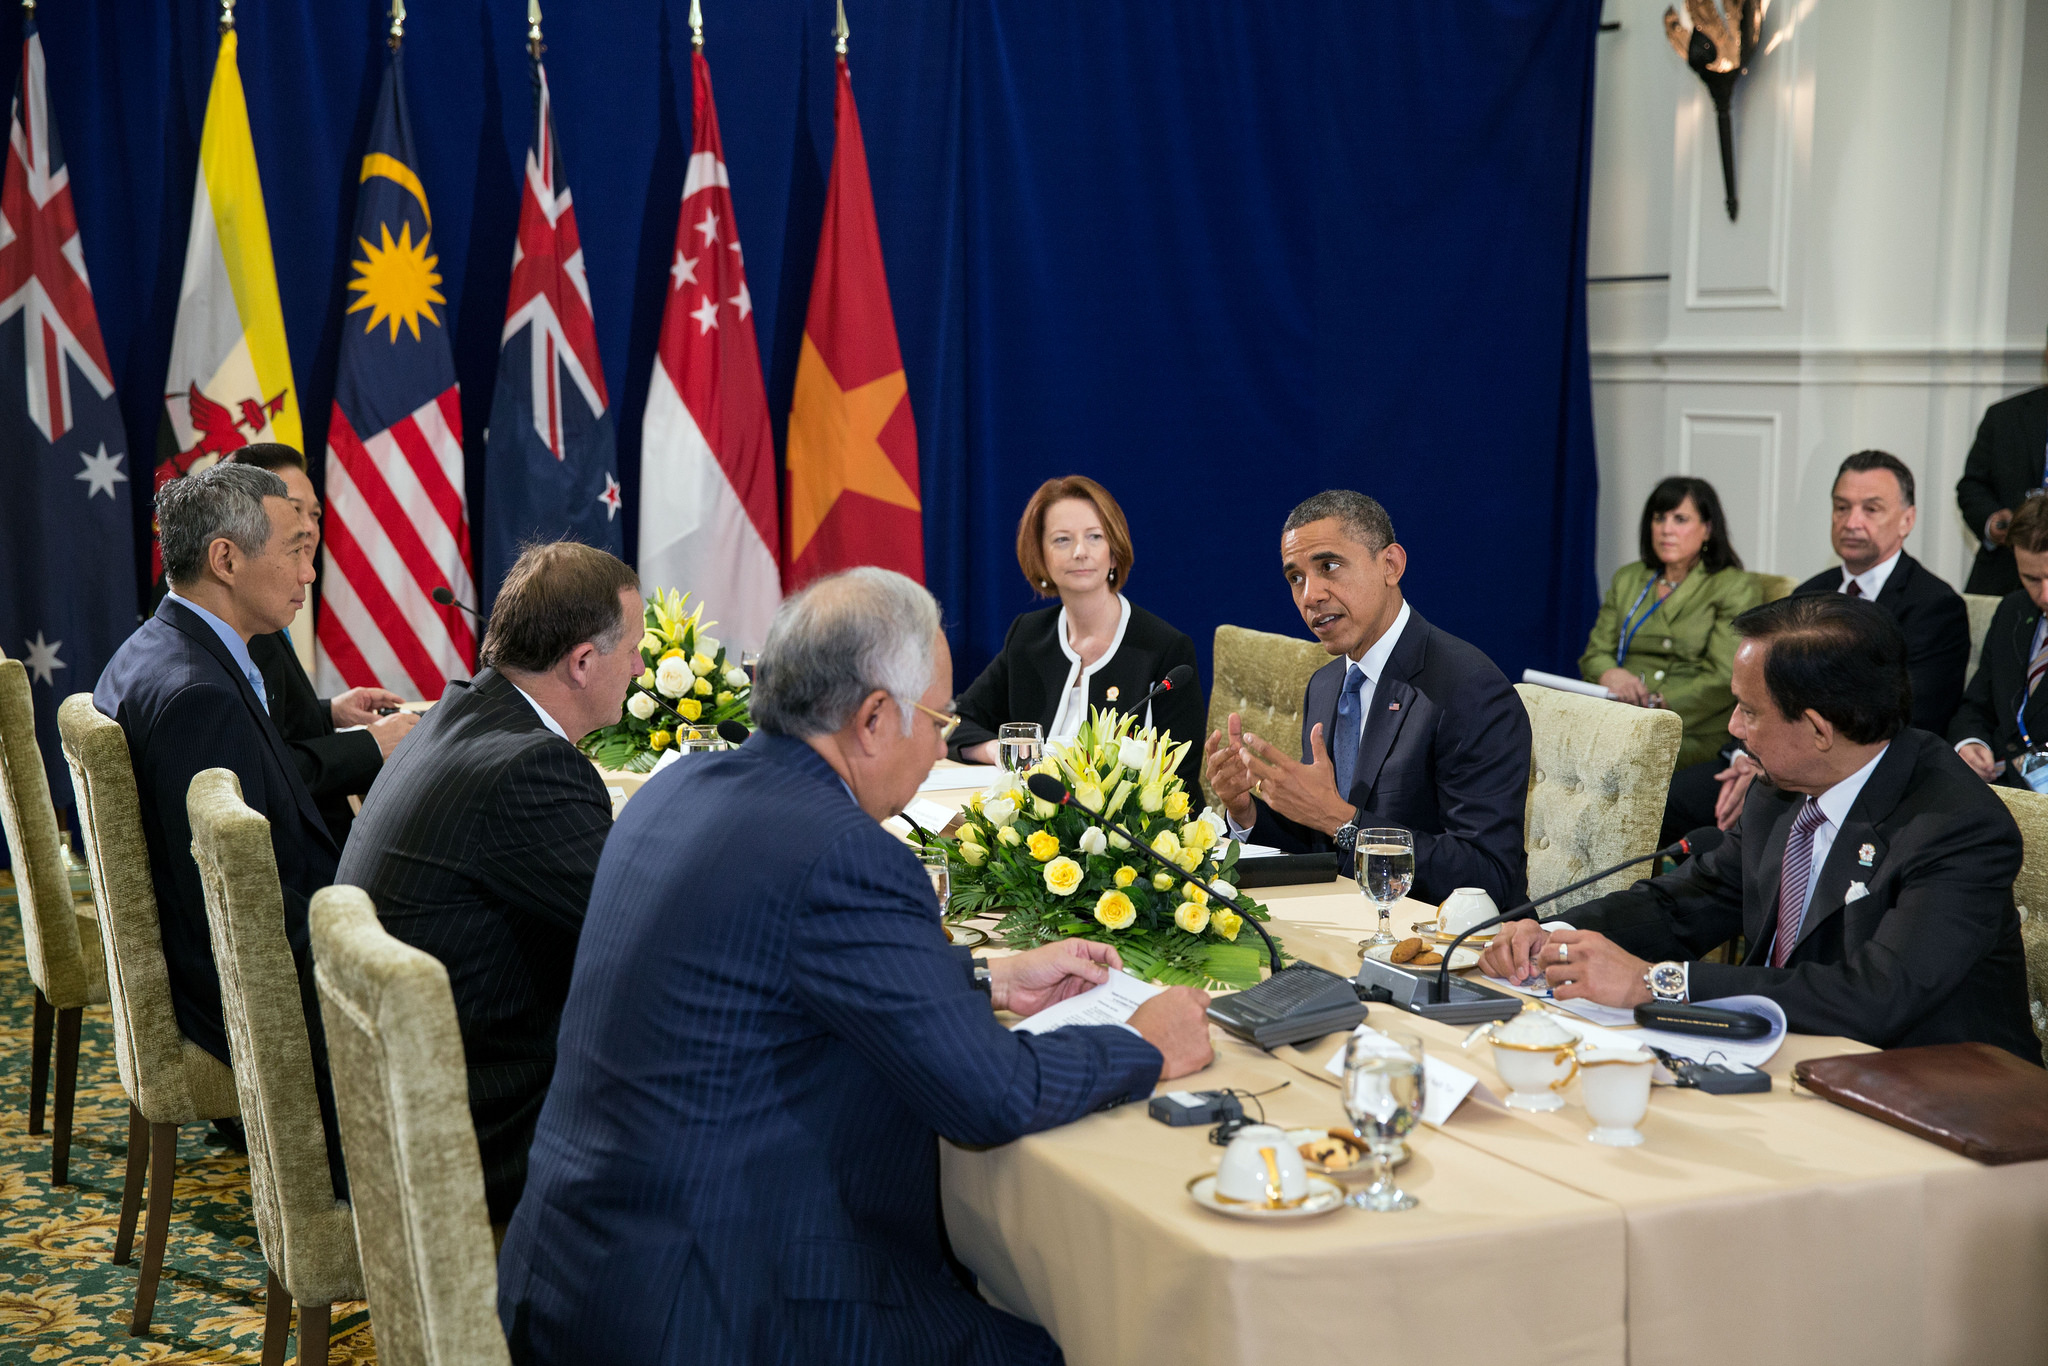 Barack Obama meeting with various Asian heads of state to discuss TPP